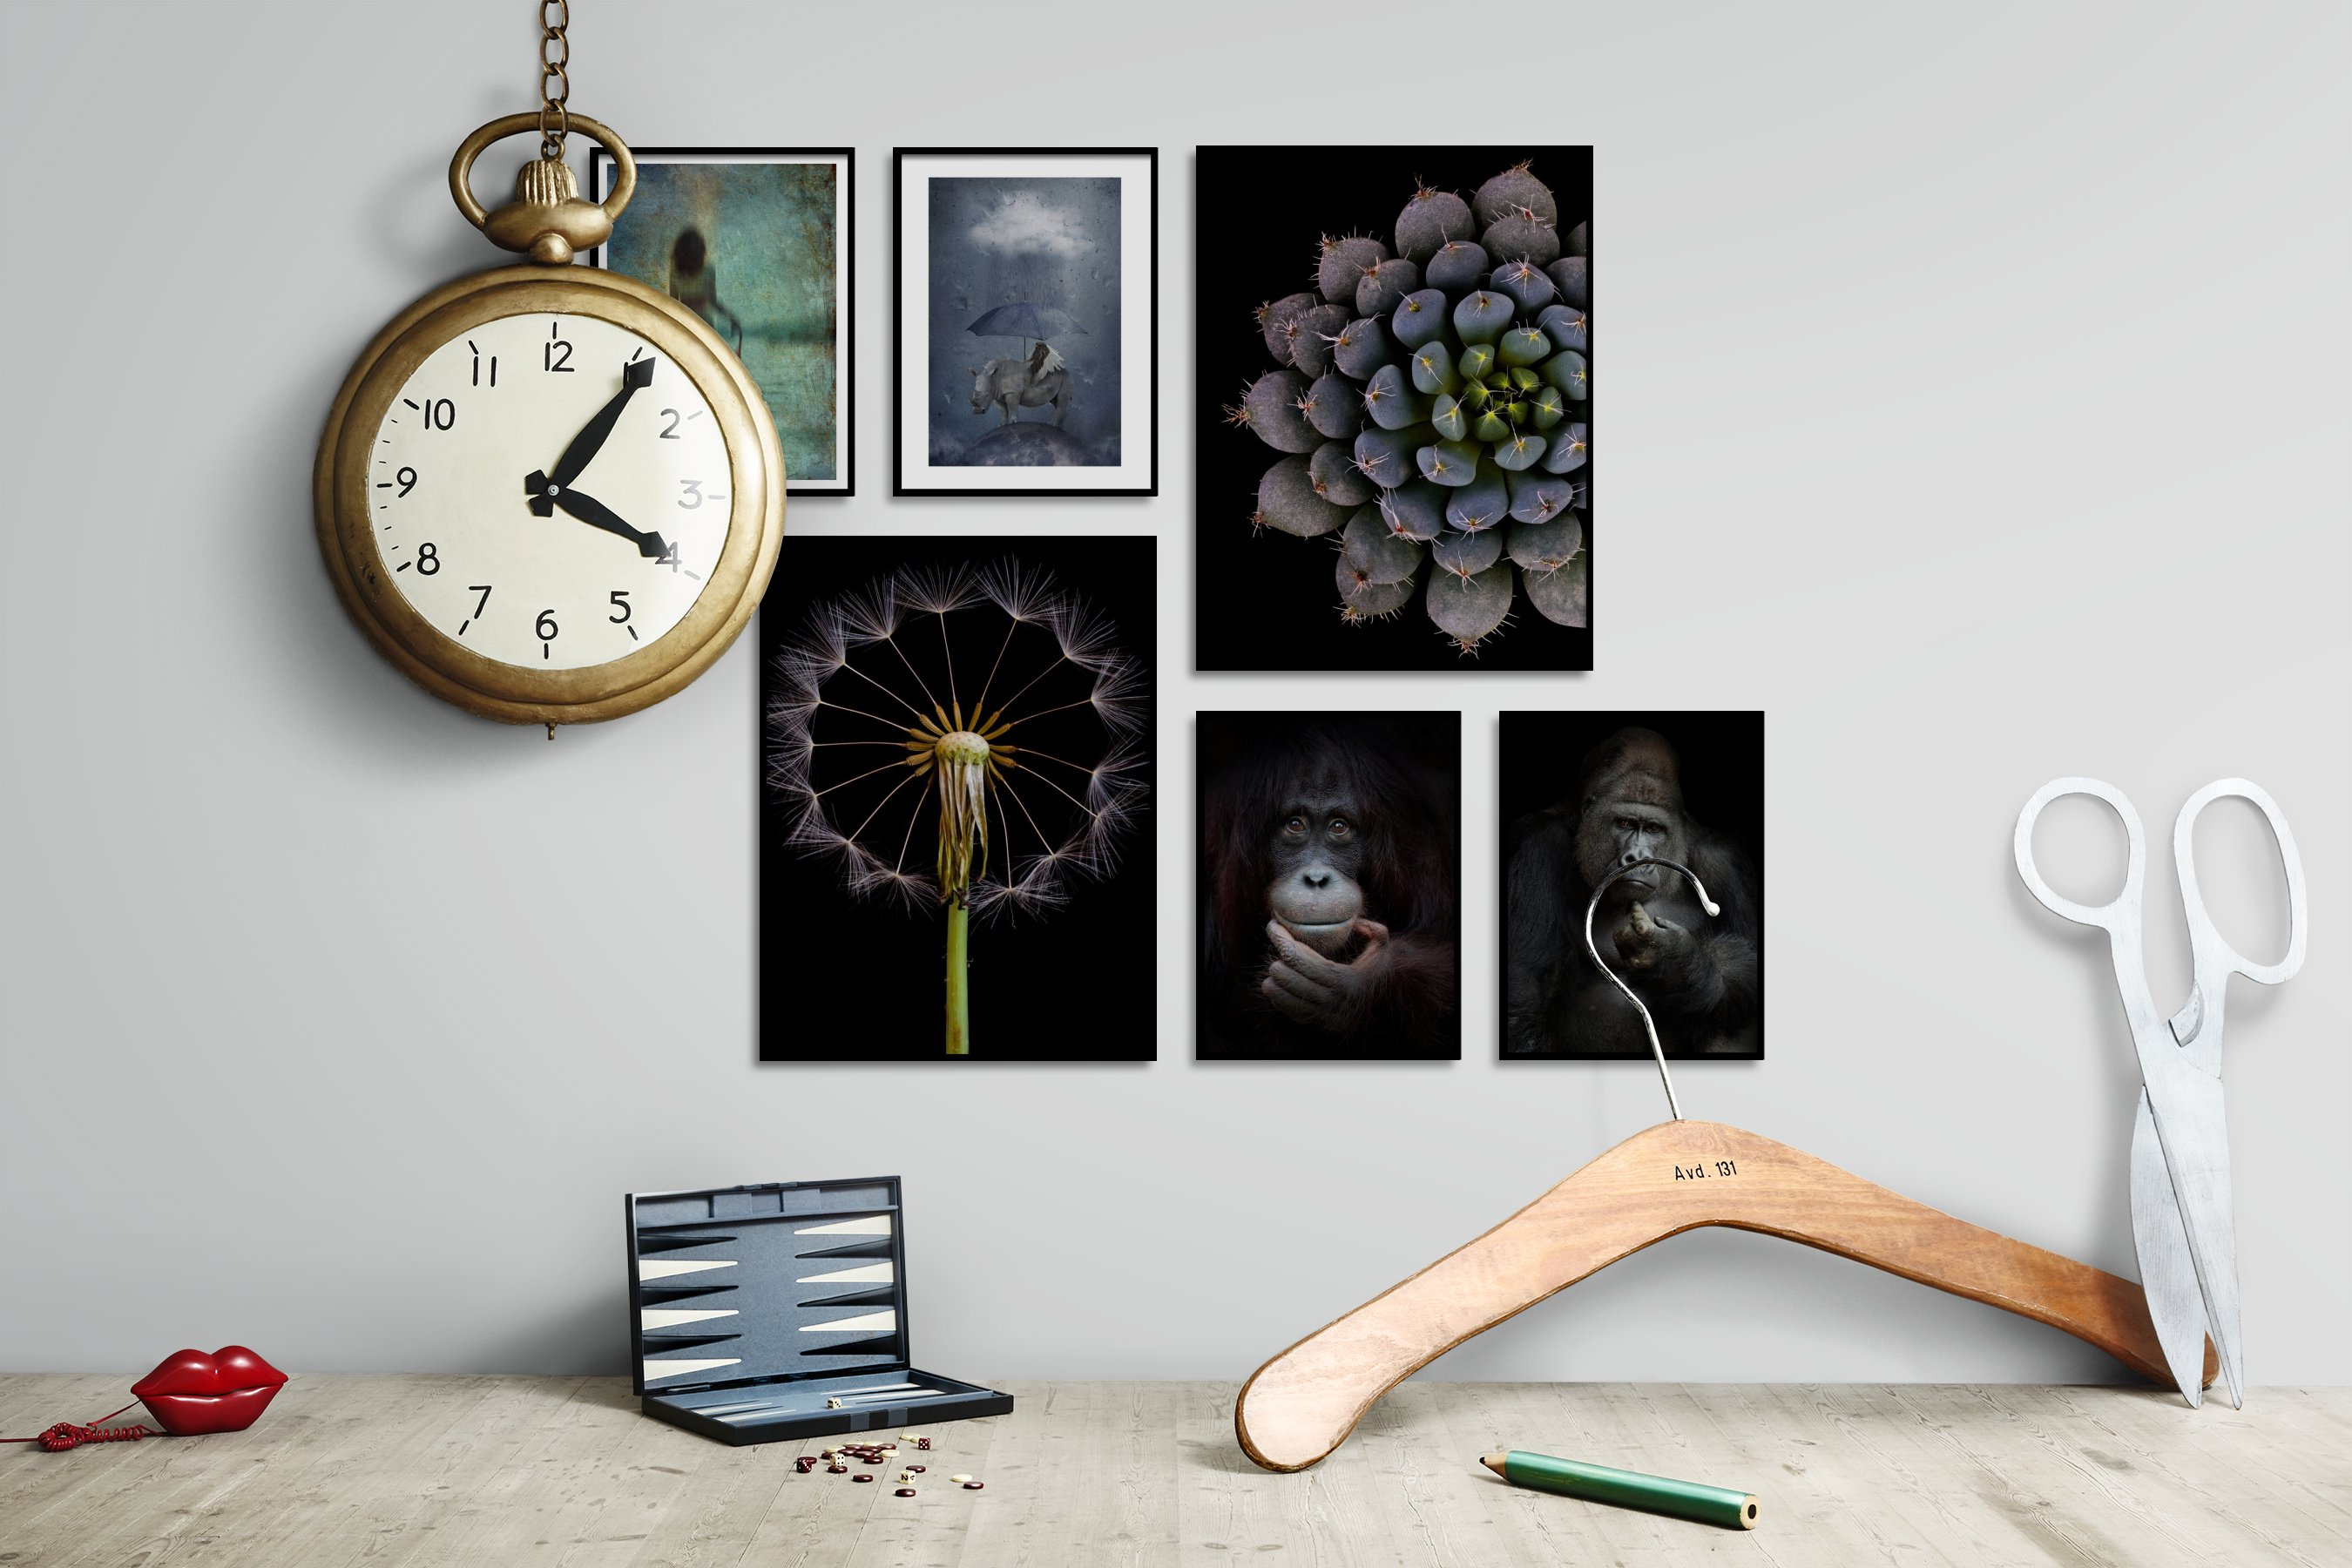 Gallery wall idea with six framed pictures arranged on a wall depicting Artsy, Animals, Dark Tones, For the Minimalist, and Flowers & Plants